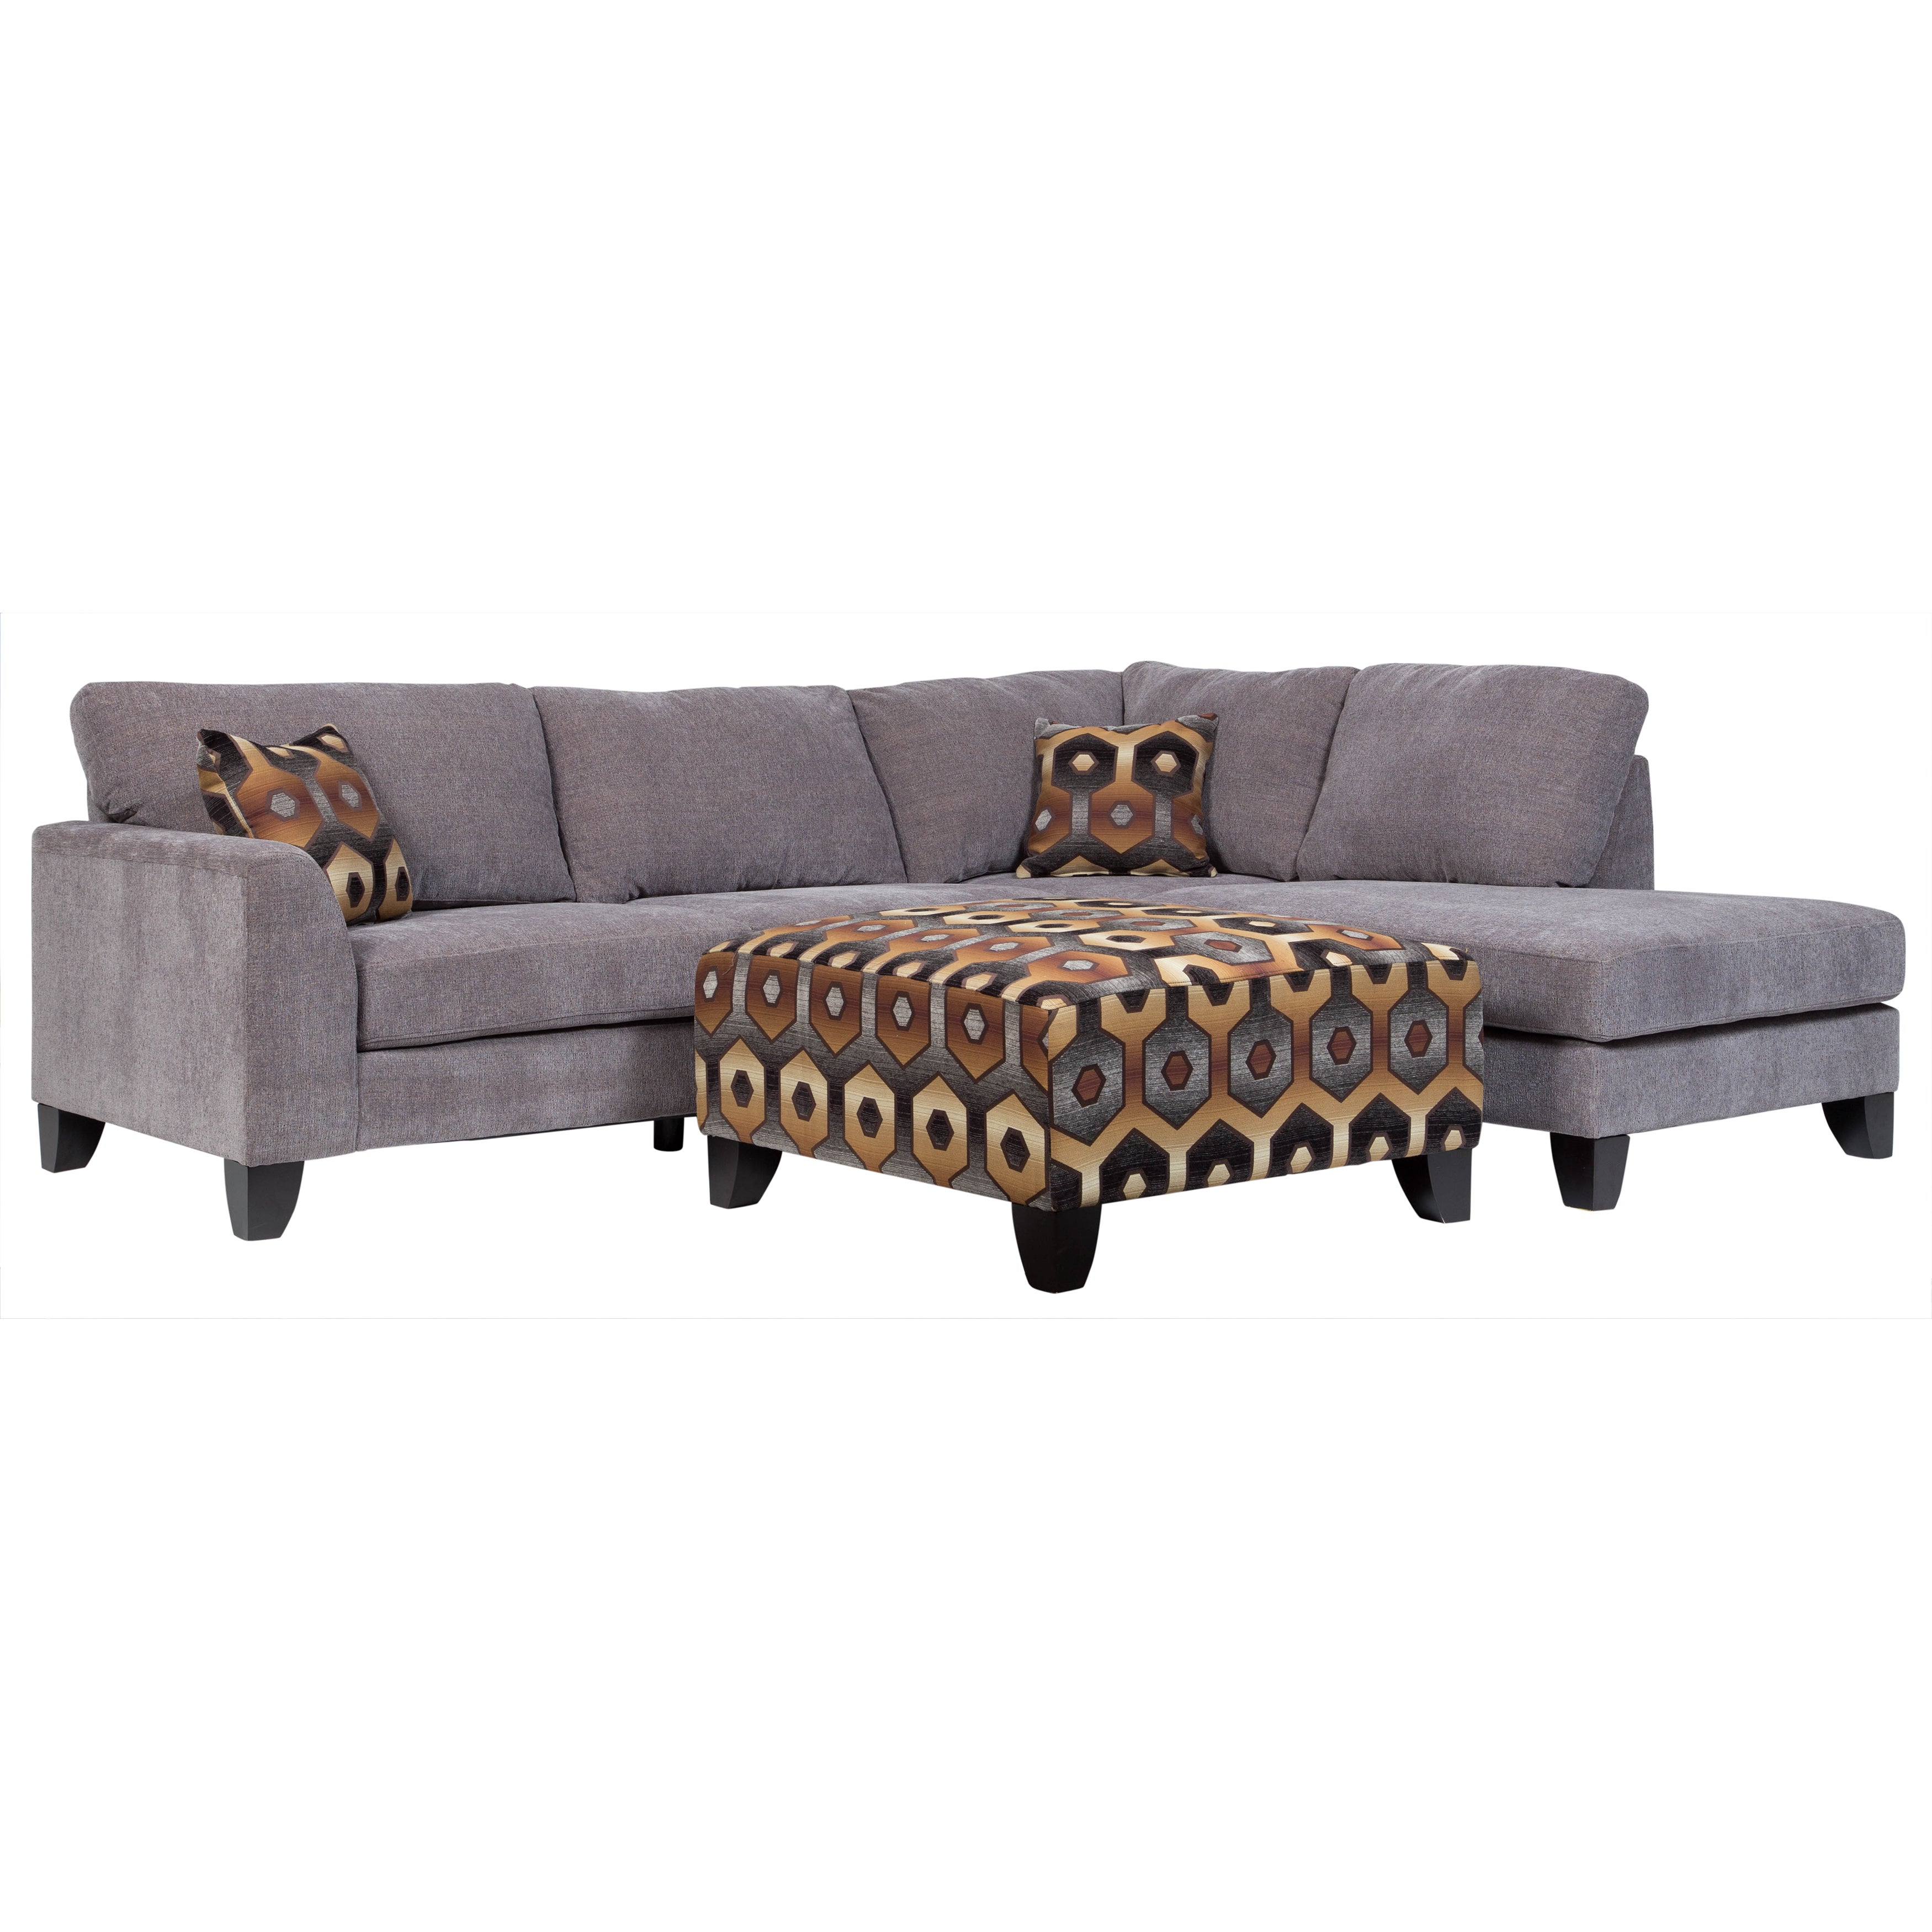 standard the sofa leather gn black granite right new sofas blu large dot sectional used secbkh